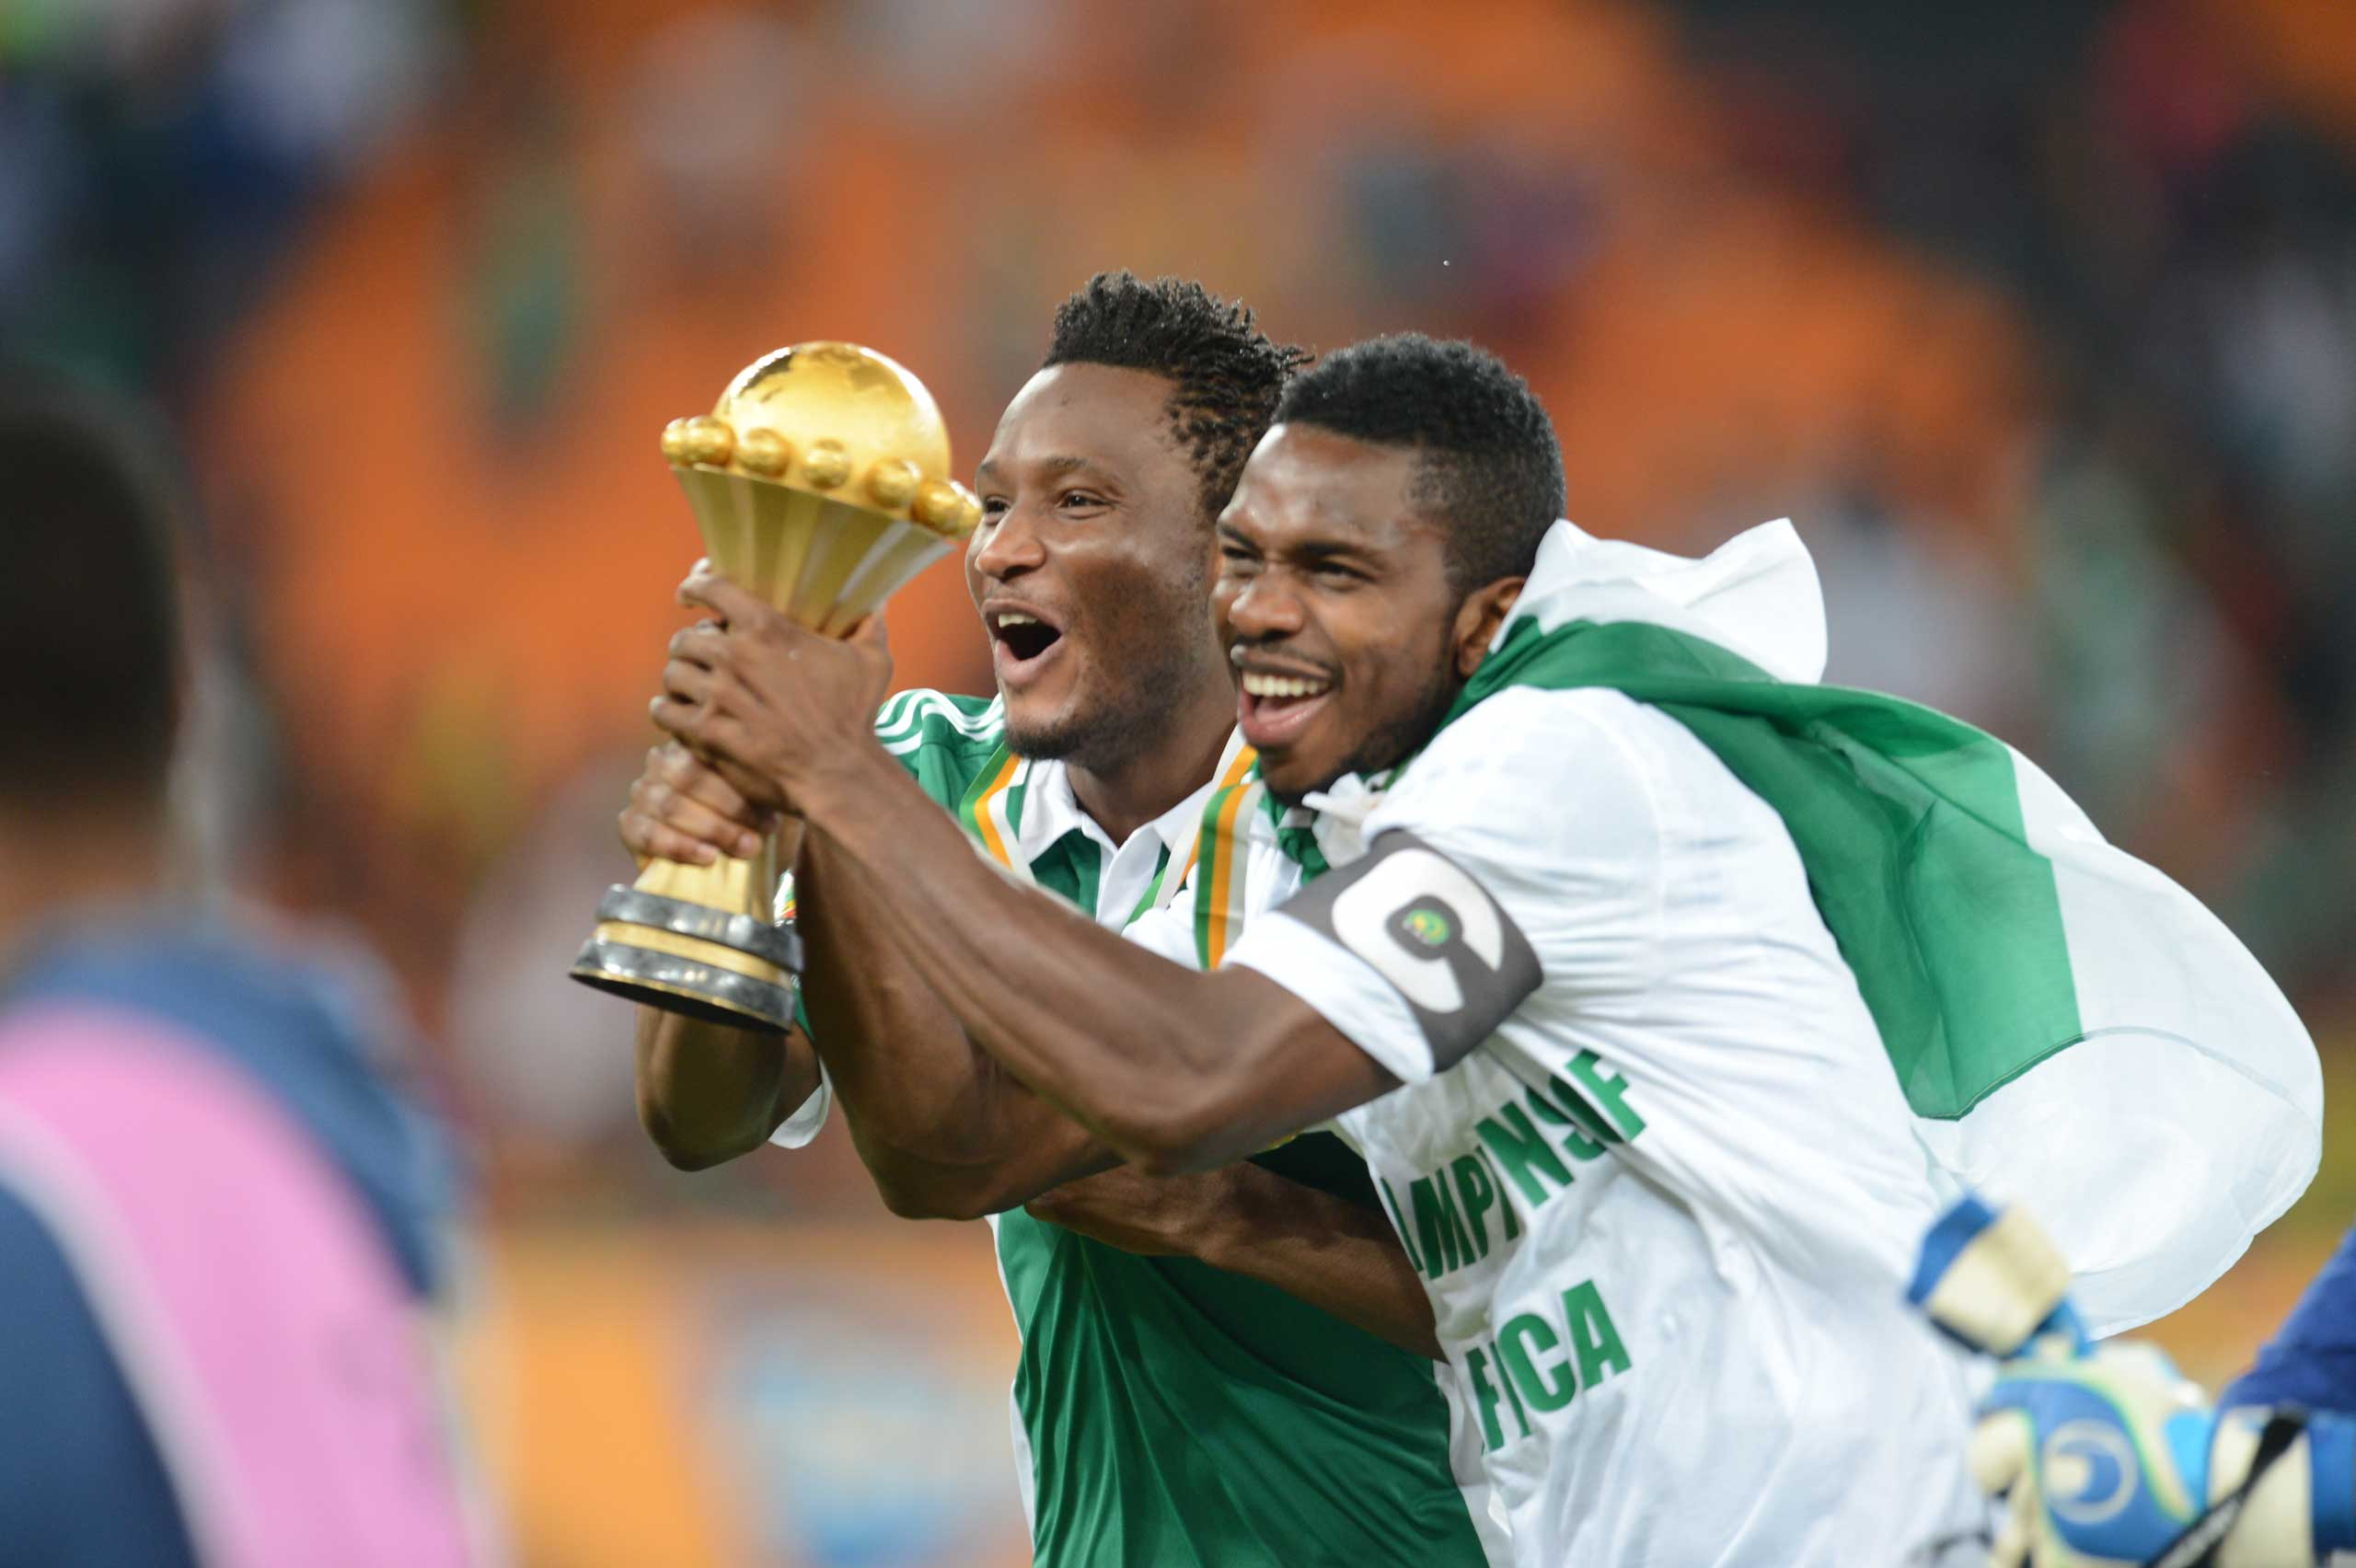 John Obi Mikel celebrates holding the trophy during the 2013 Orange African Cup of Nations Final match between Nigeria and Burkina Faso from the National Stadium in Johannesburg on Feb. 10, 2013.